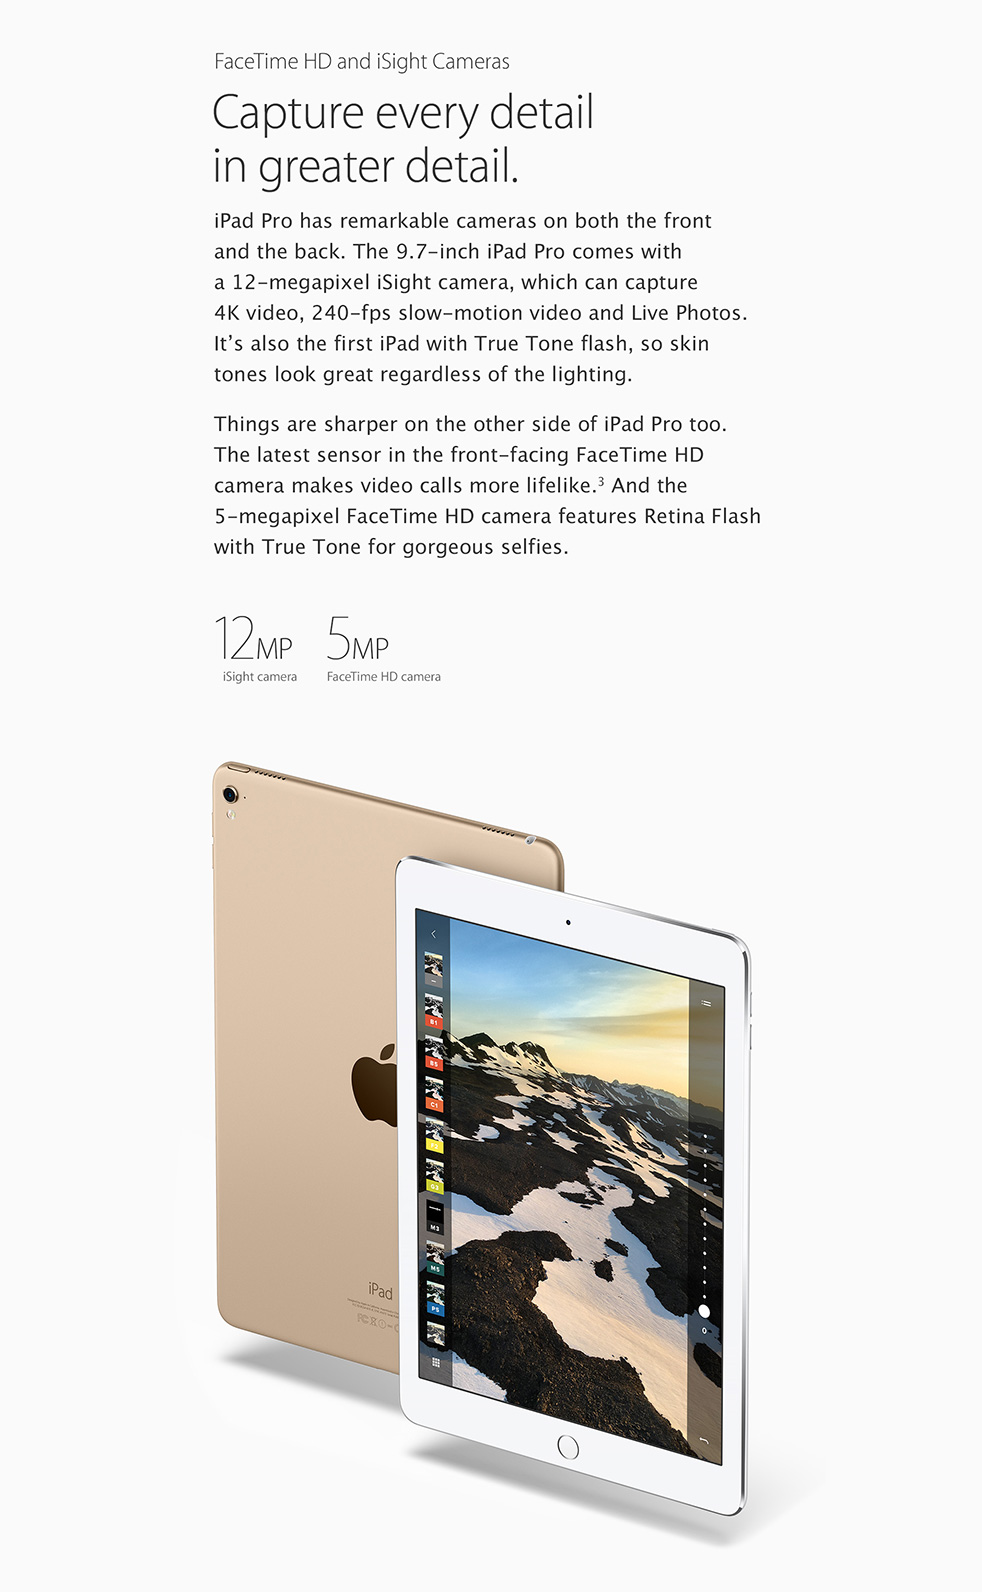 iPad Pro 9.7-inch with FaceTime HD and iSight Camera